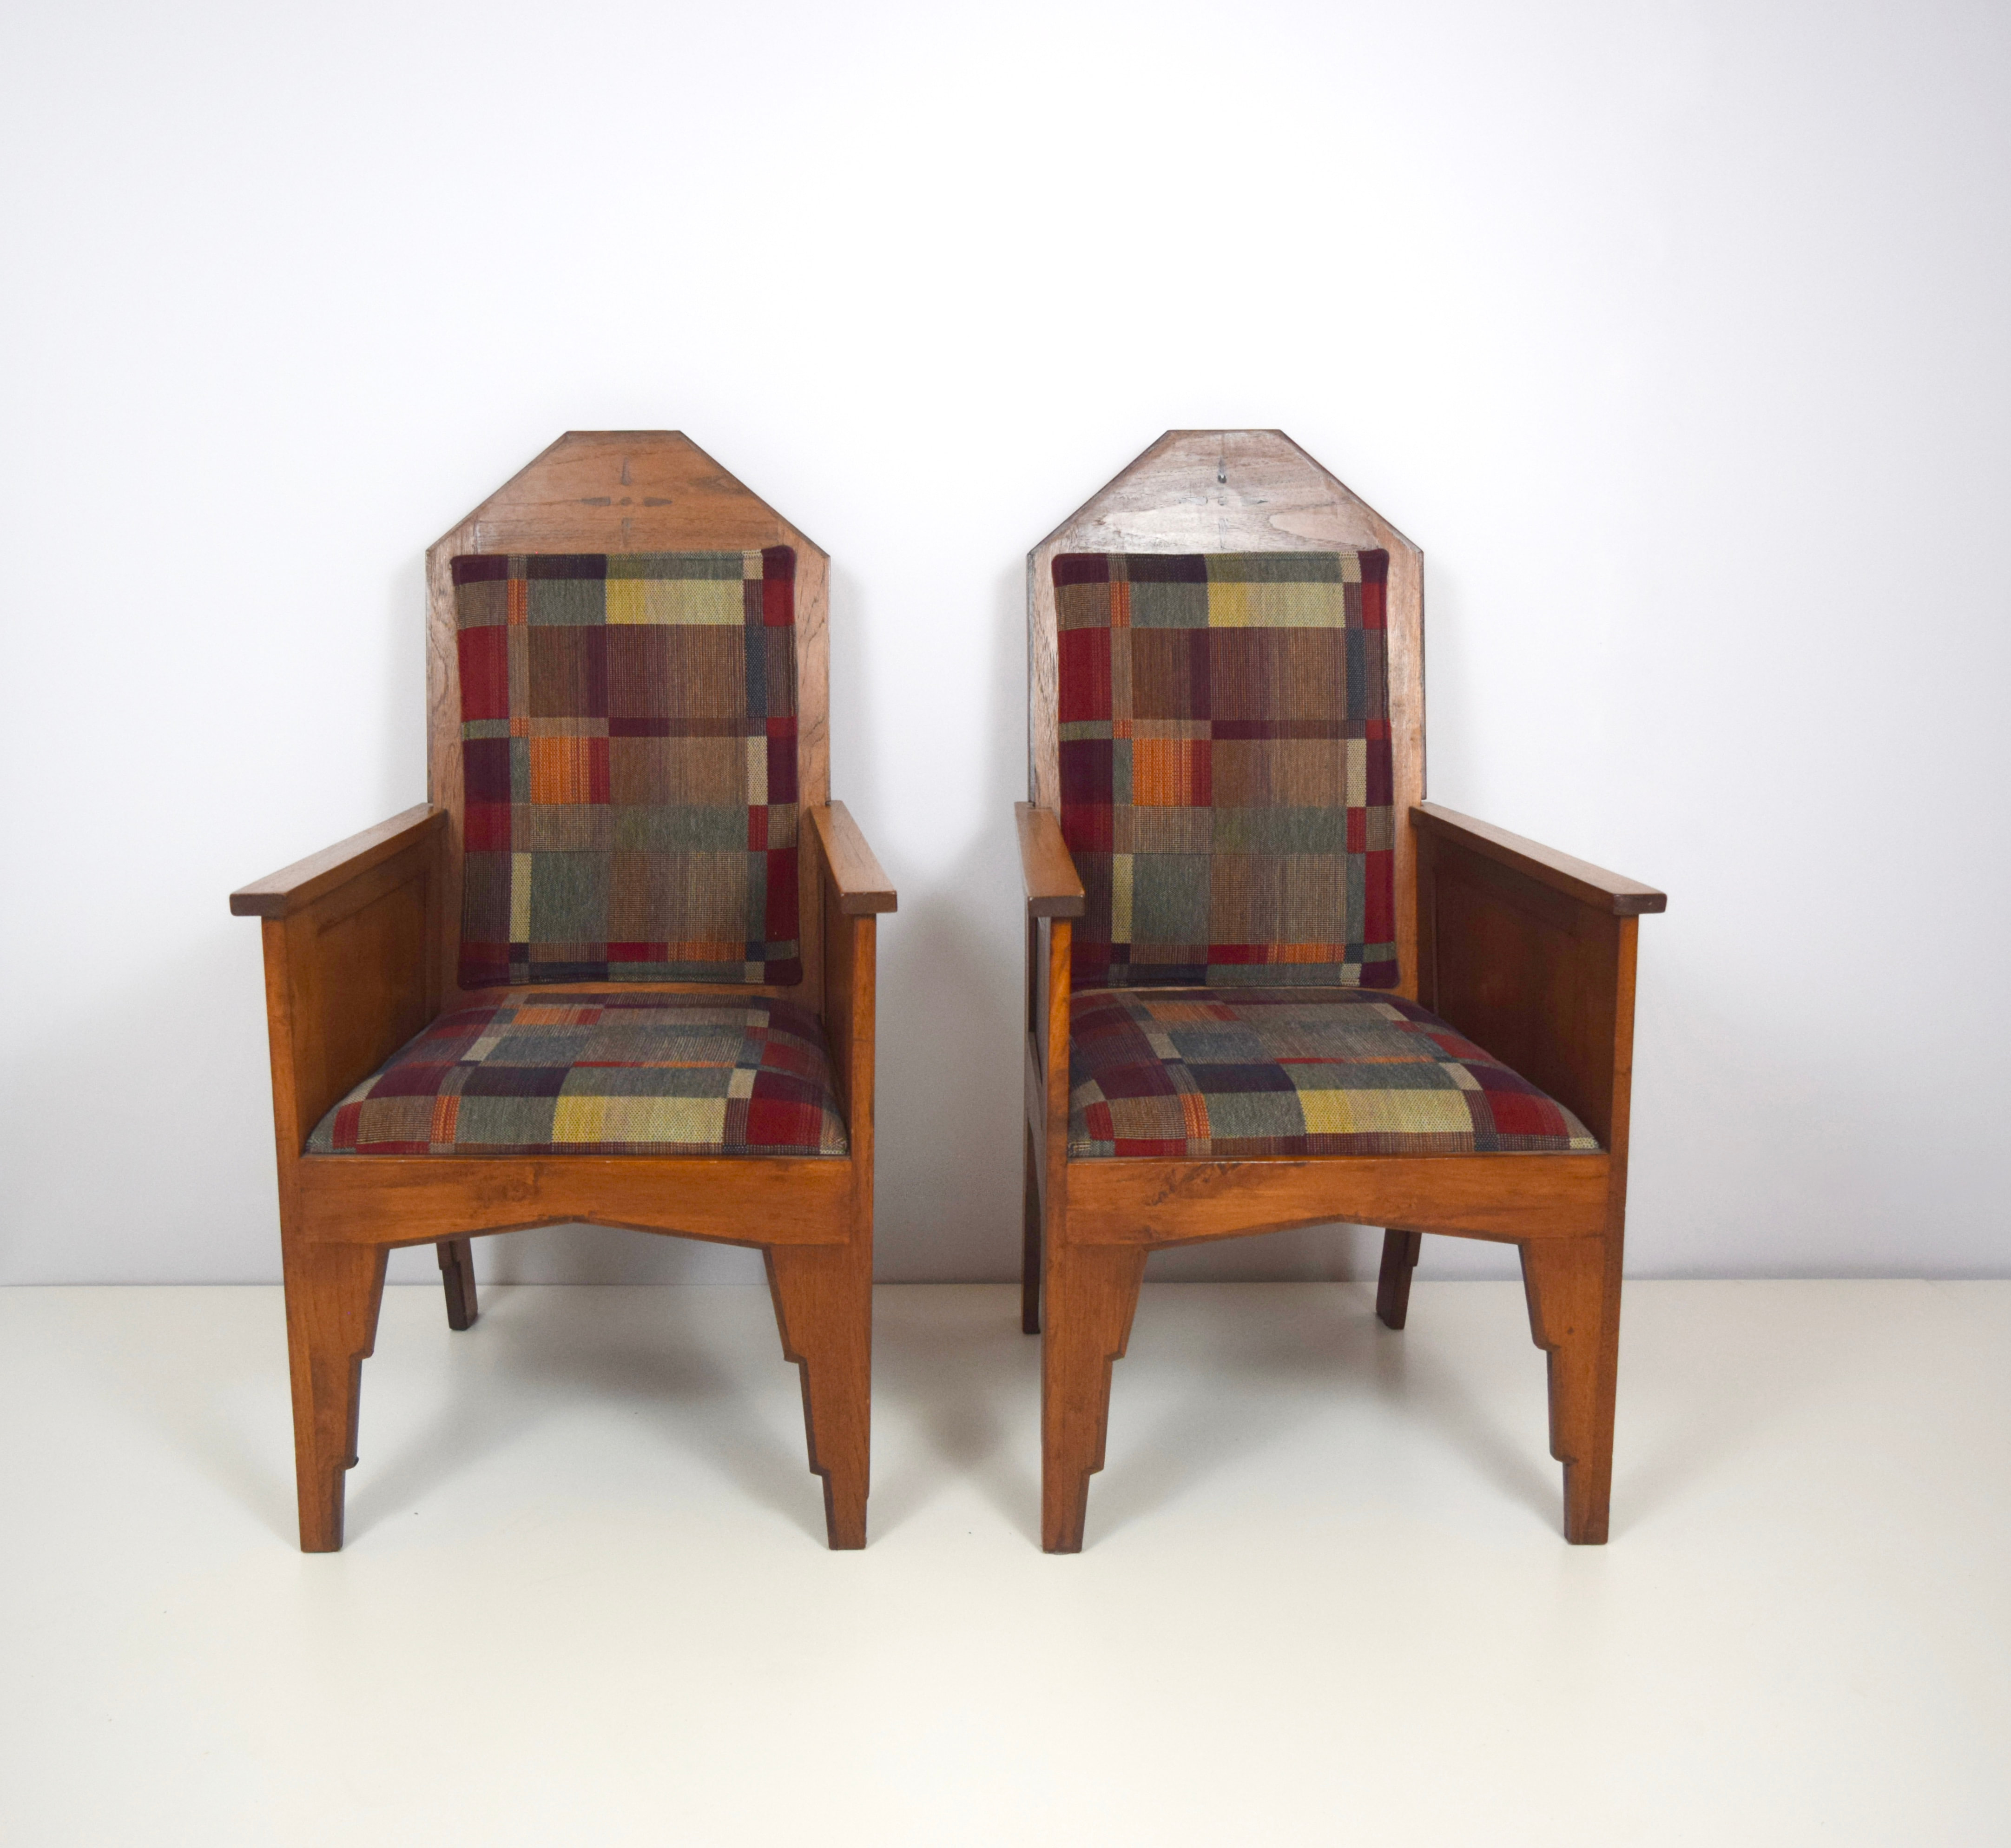 Amsterdam School Arm Chairs, Indonesia 1920's, Set of 2